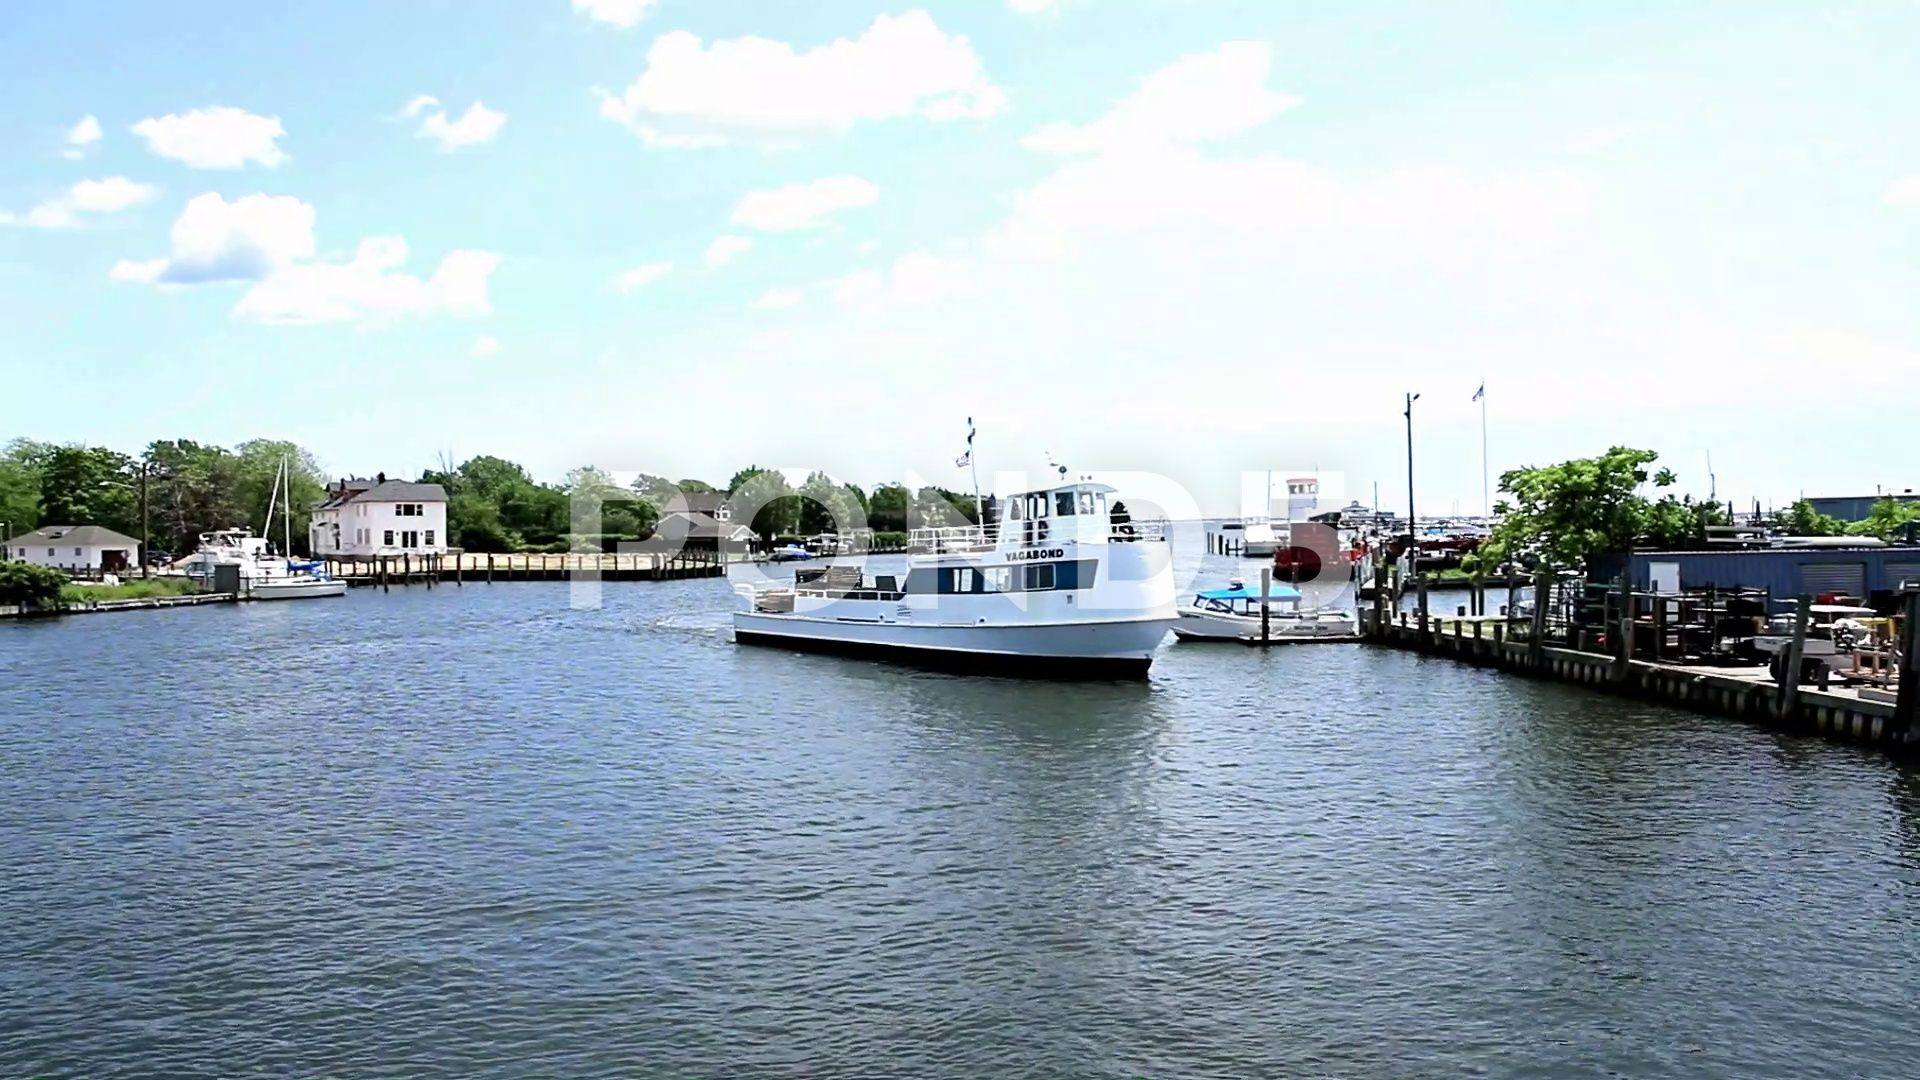 Fire island ferry boat backing out of the dock in bay